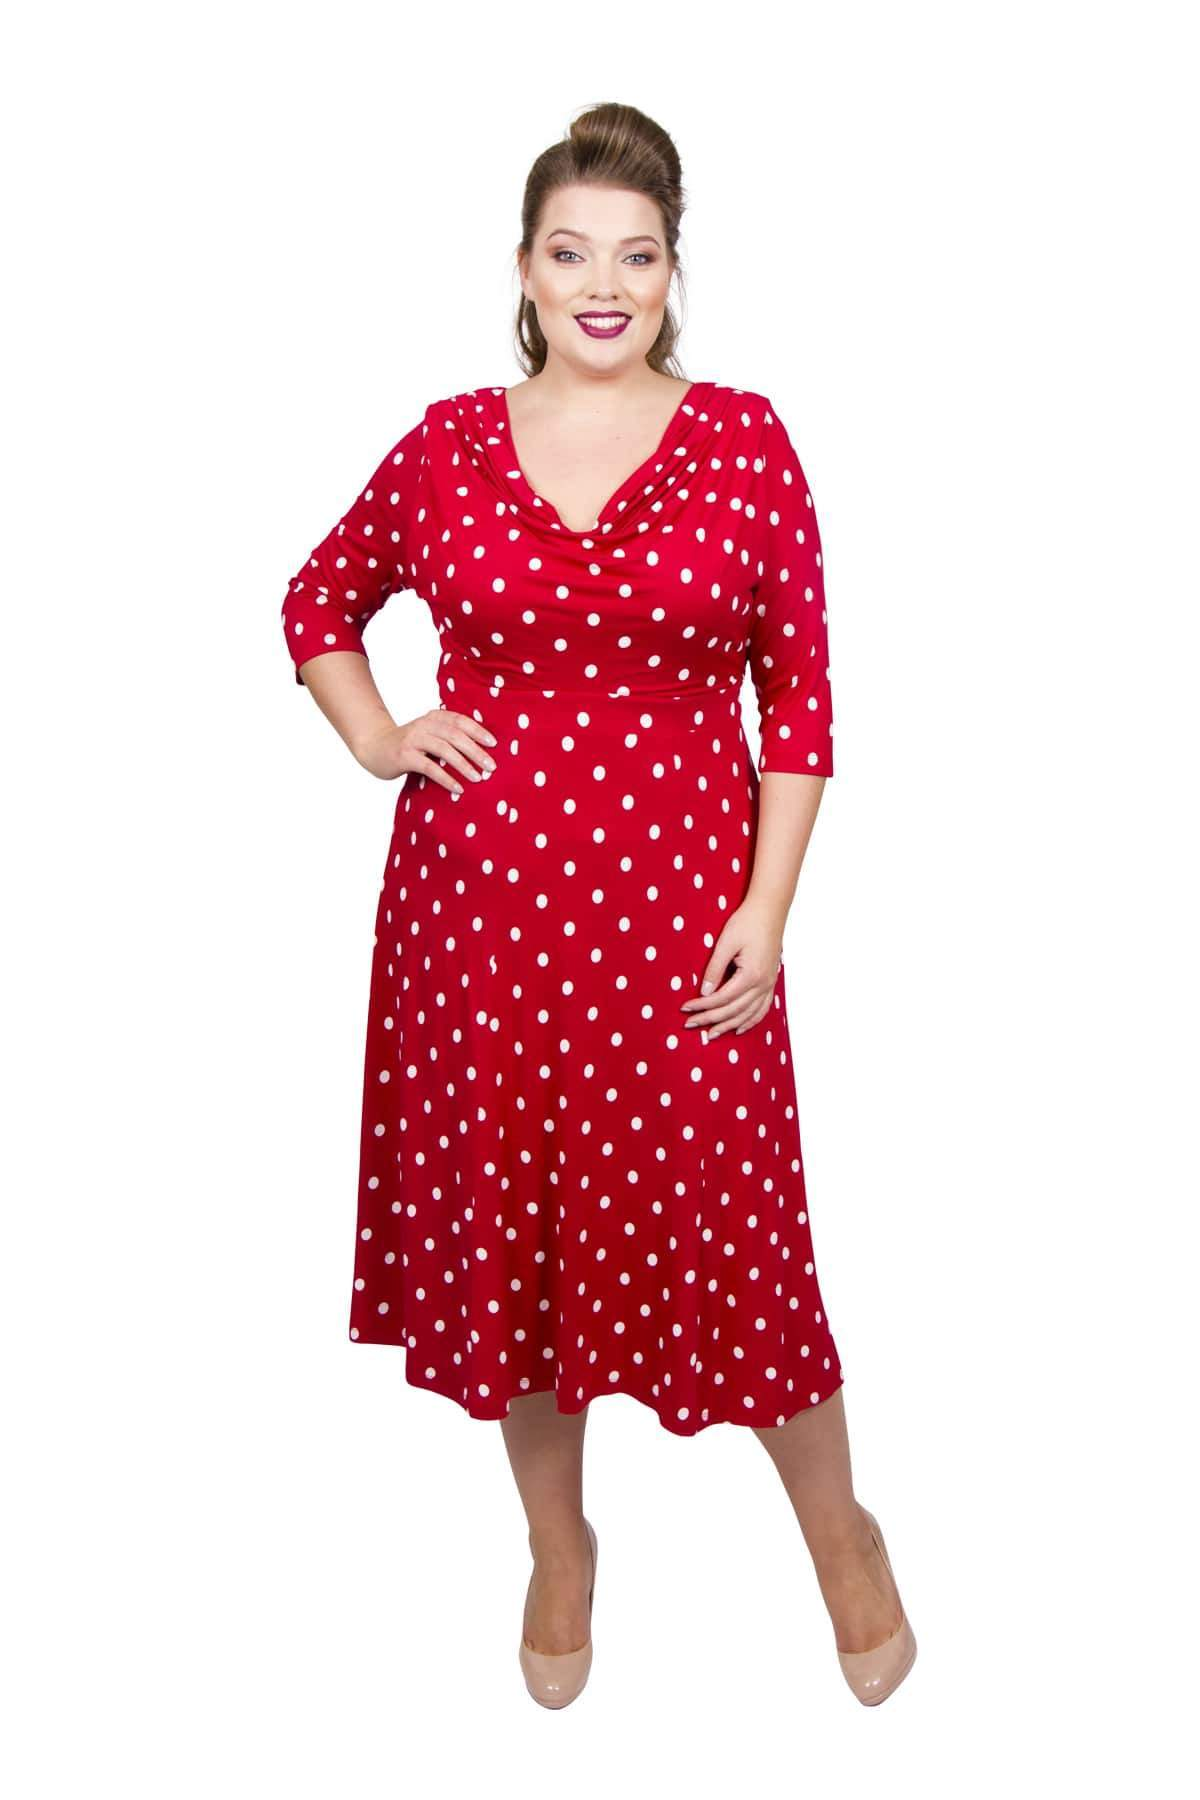 1940s Fashion Advice for Tall Women Lollidot Cowl Neck 40s Dress - SCARLETWHI  12 £60.00 AT vintagedancer.com